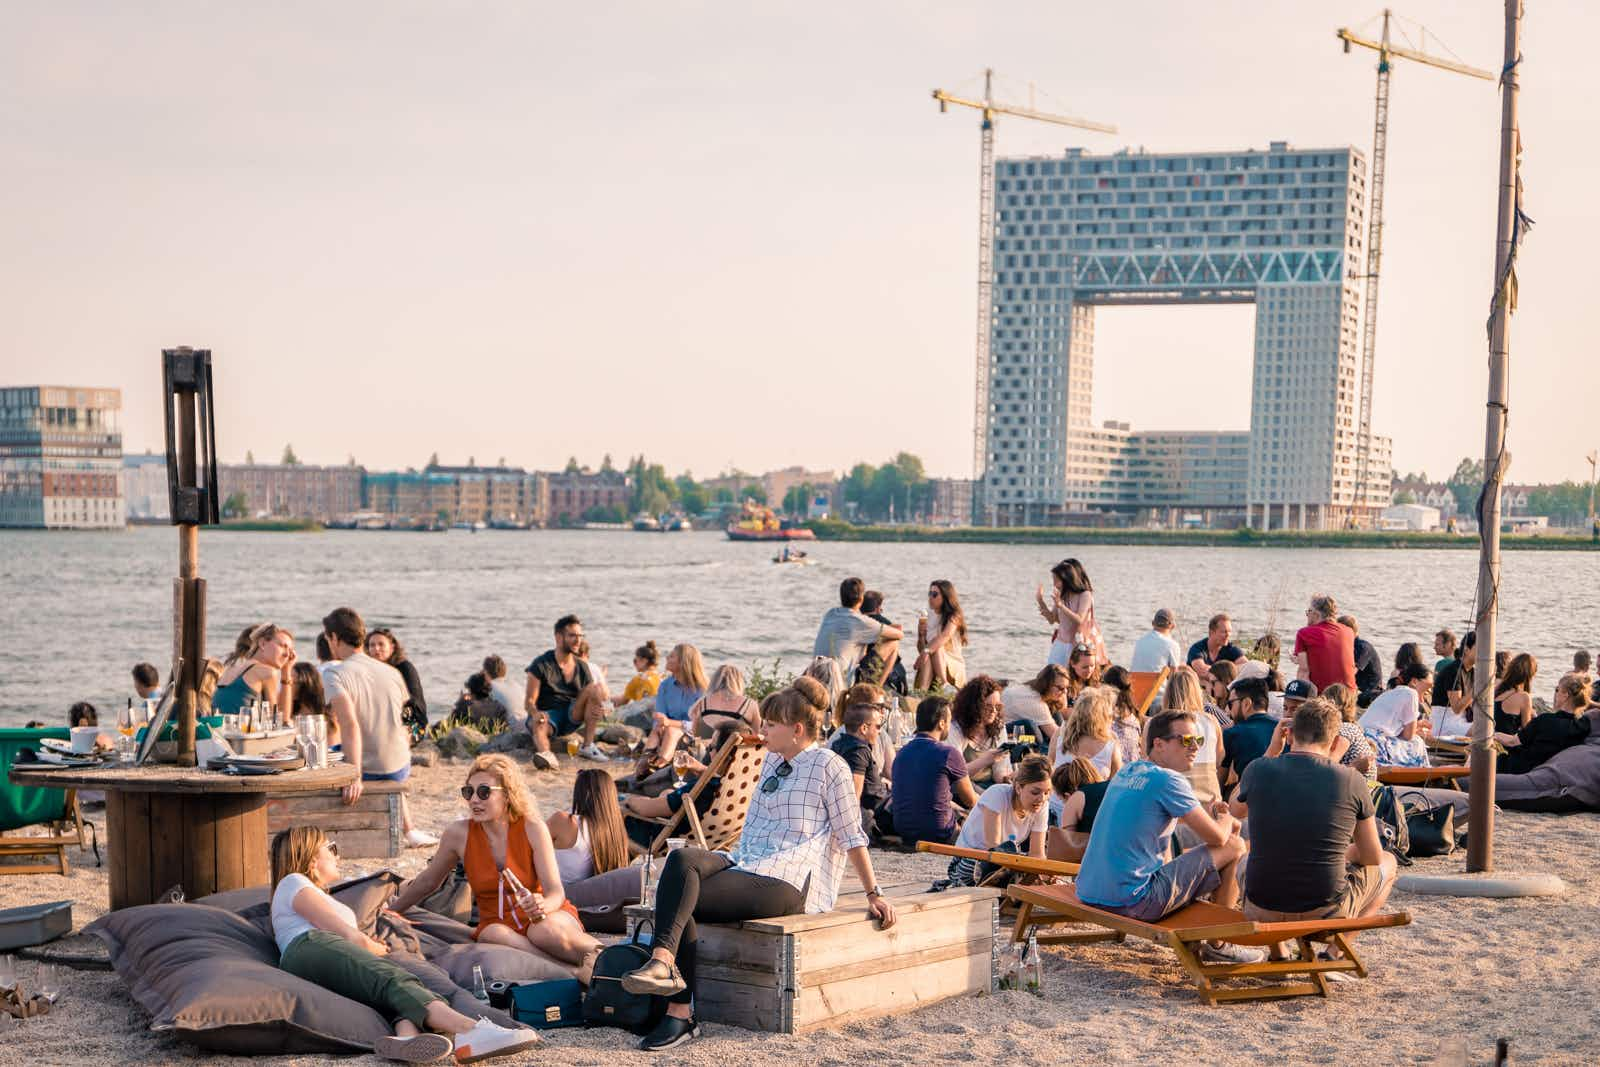 Patrons lounge on a beach at art festival Kinetisch Noord, held at NDSM Wharf